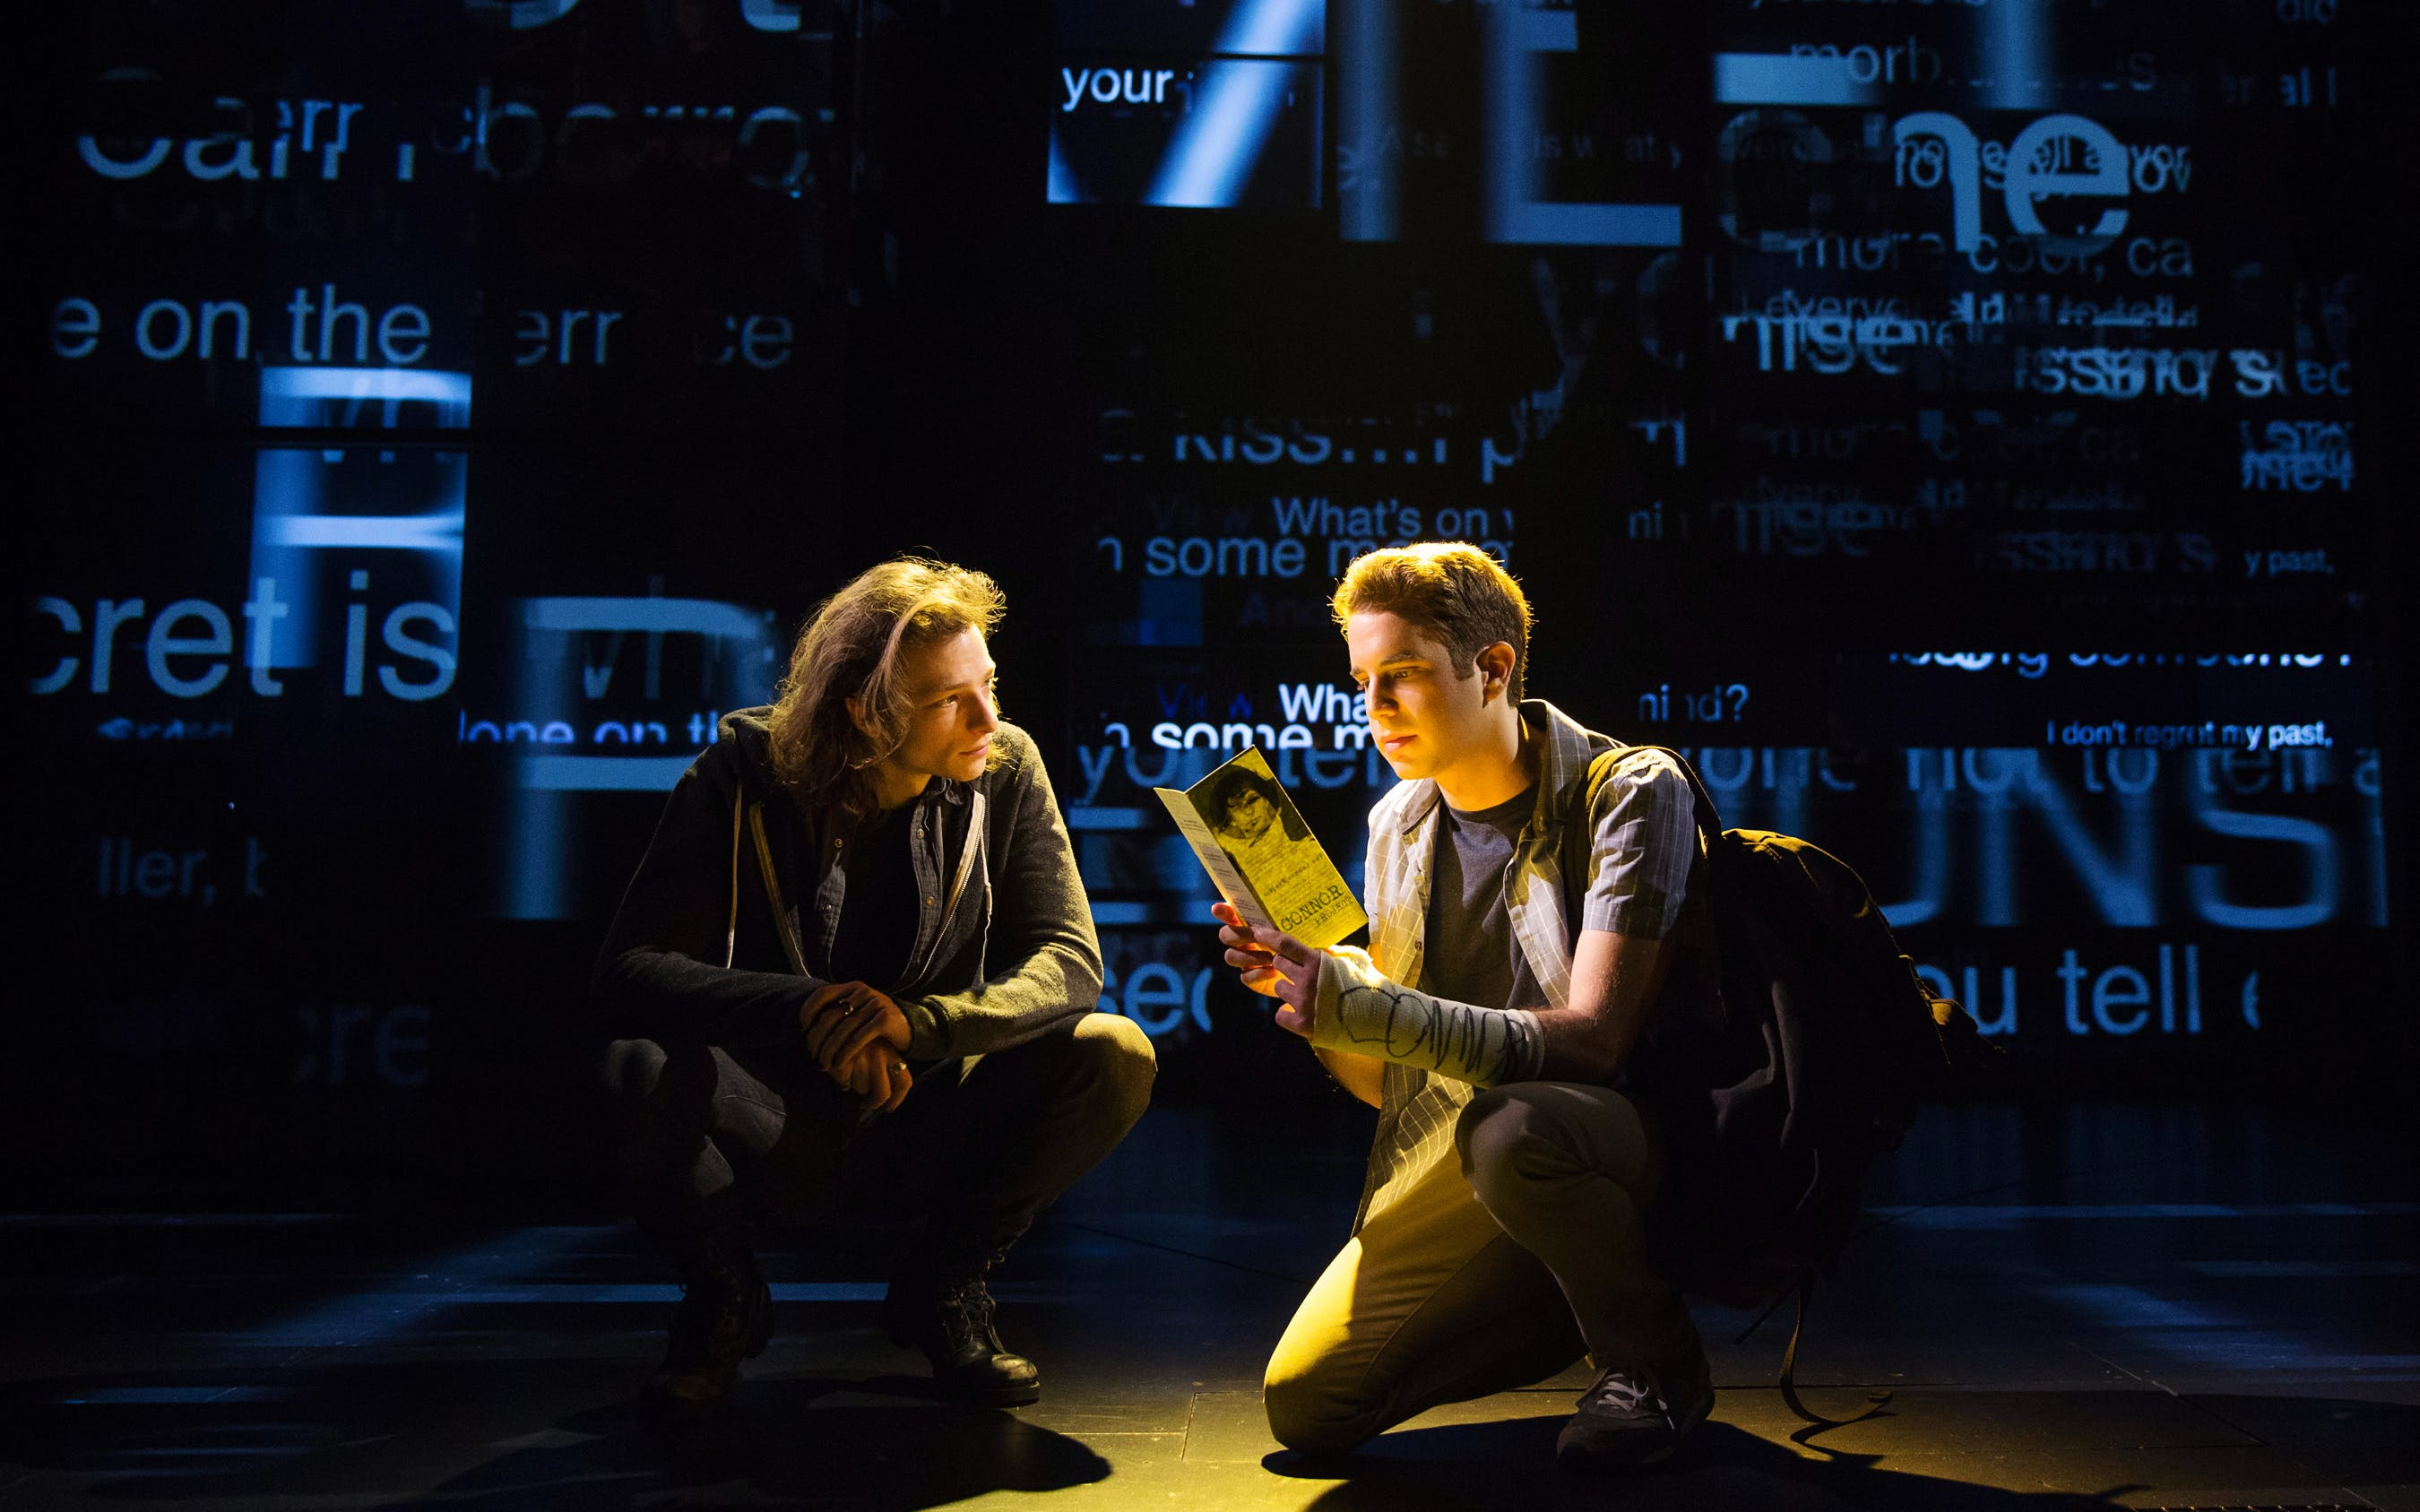 Best Broadway Musicals - Dear Evan Hansen